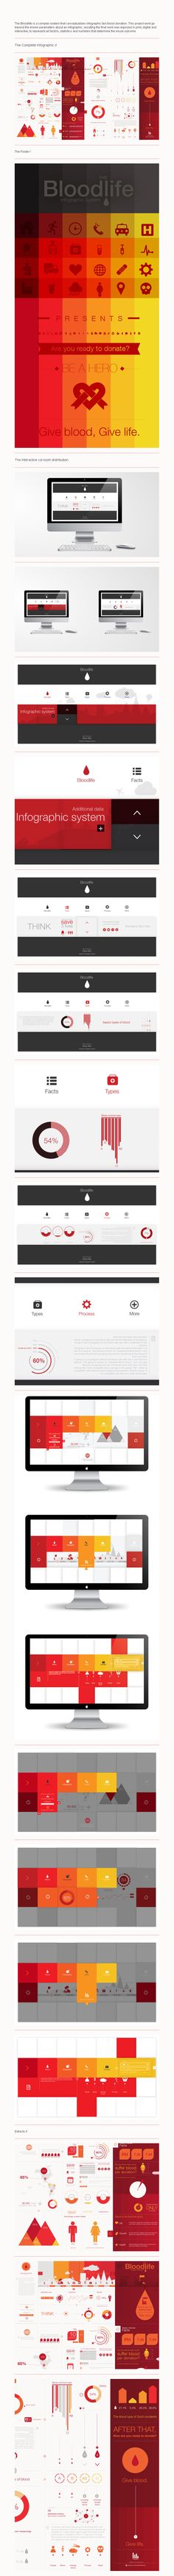 Bloodlife // Interactive Infographic System by Martín Liveratore